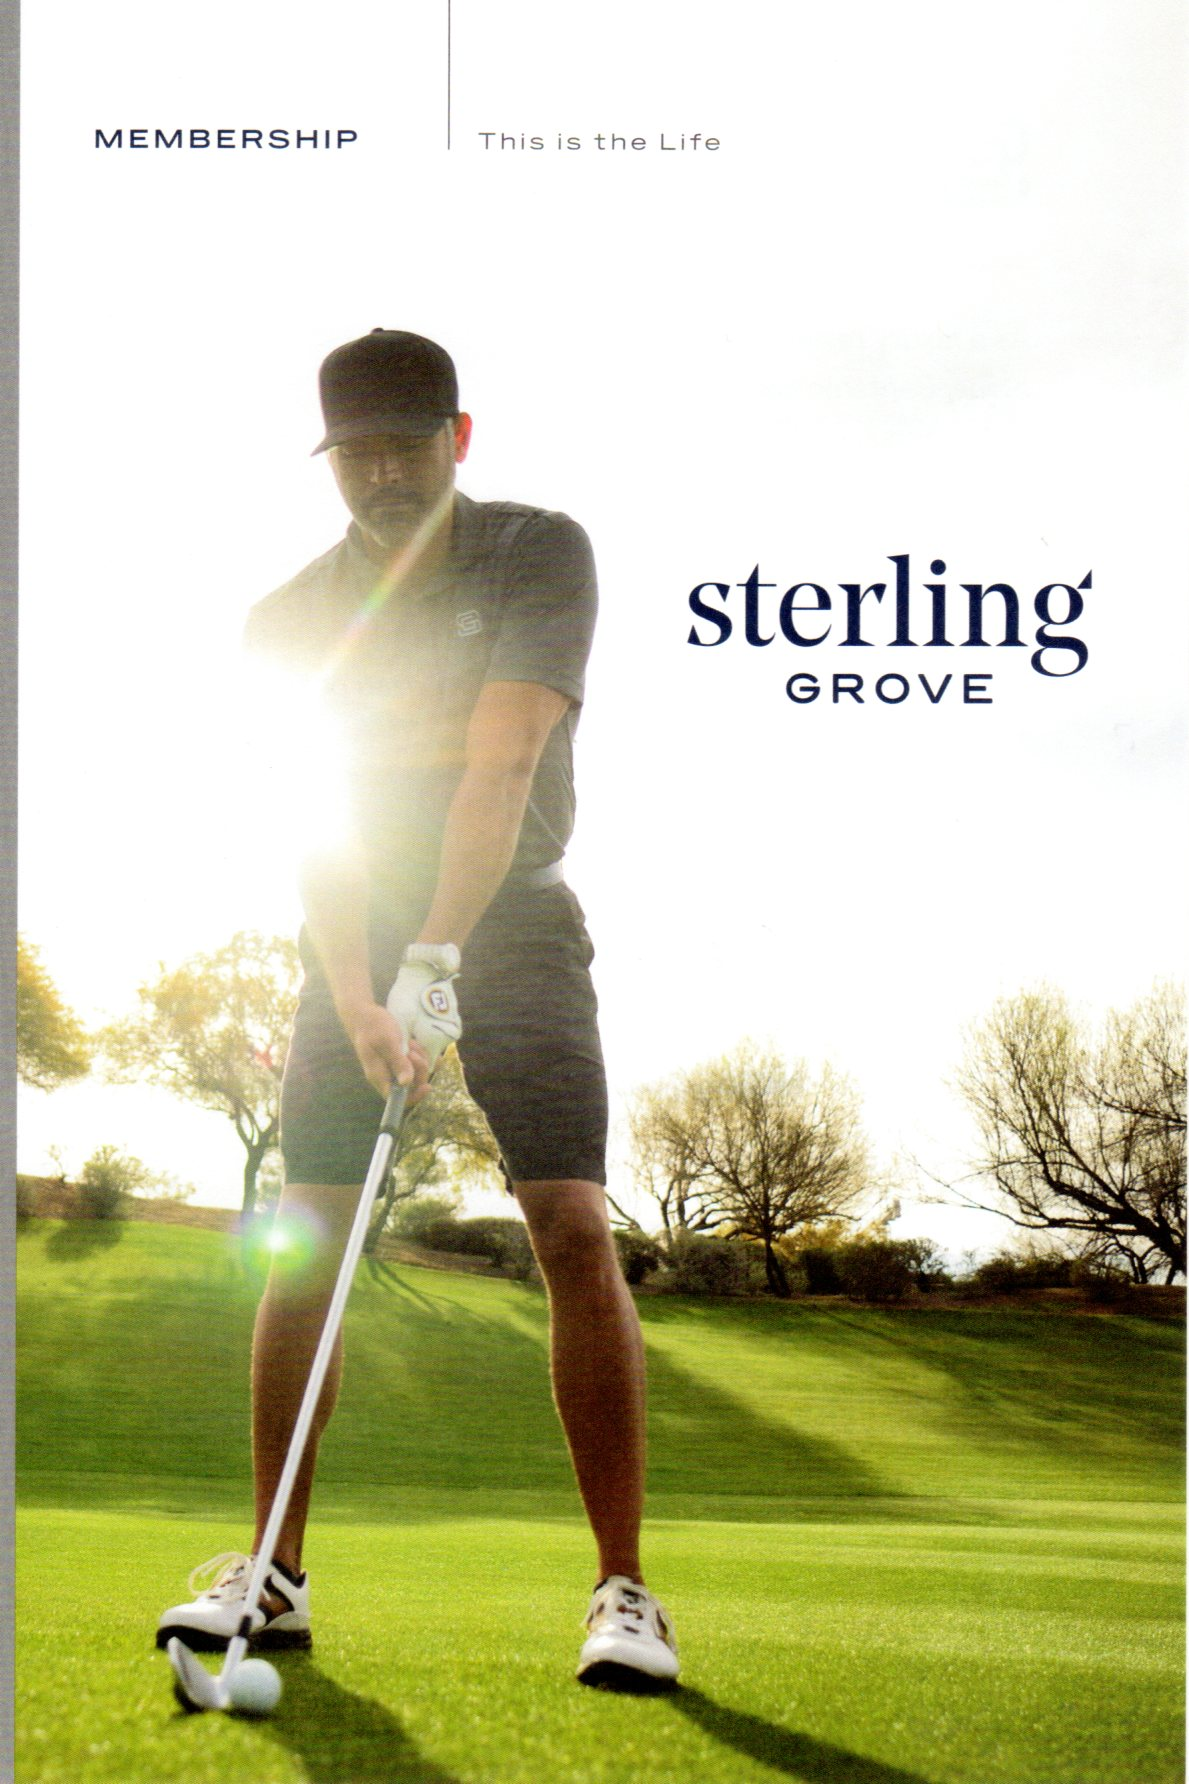 STERLING GROVE- CLUBHOUSE MEMBERSHIP INFORMATION